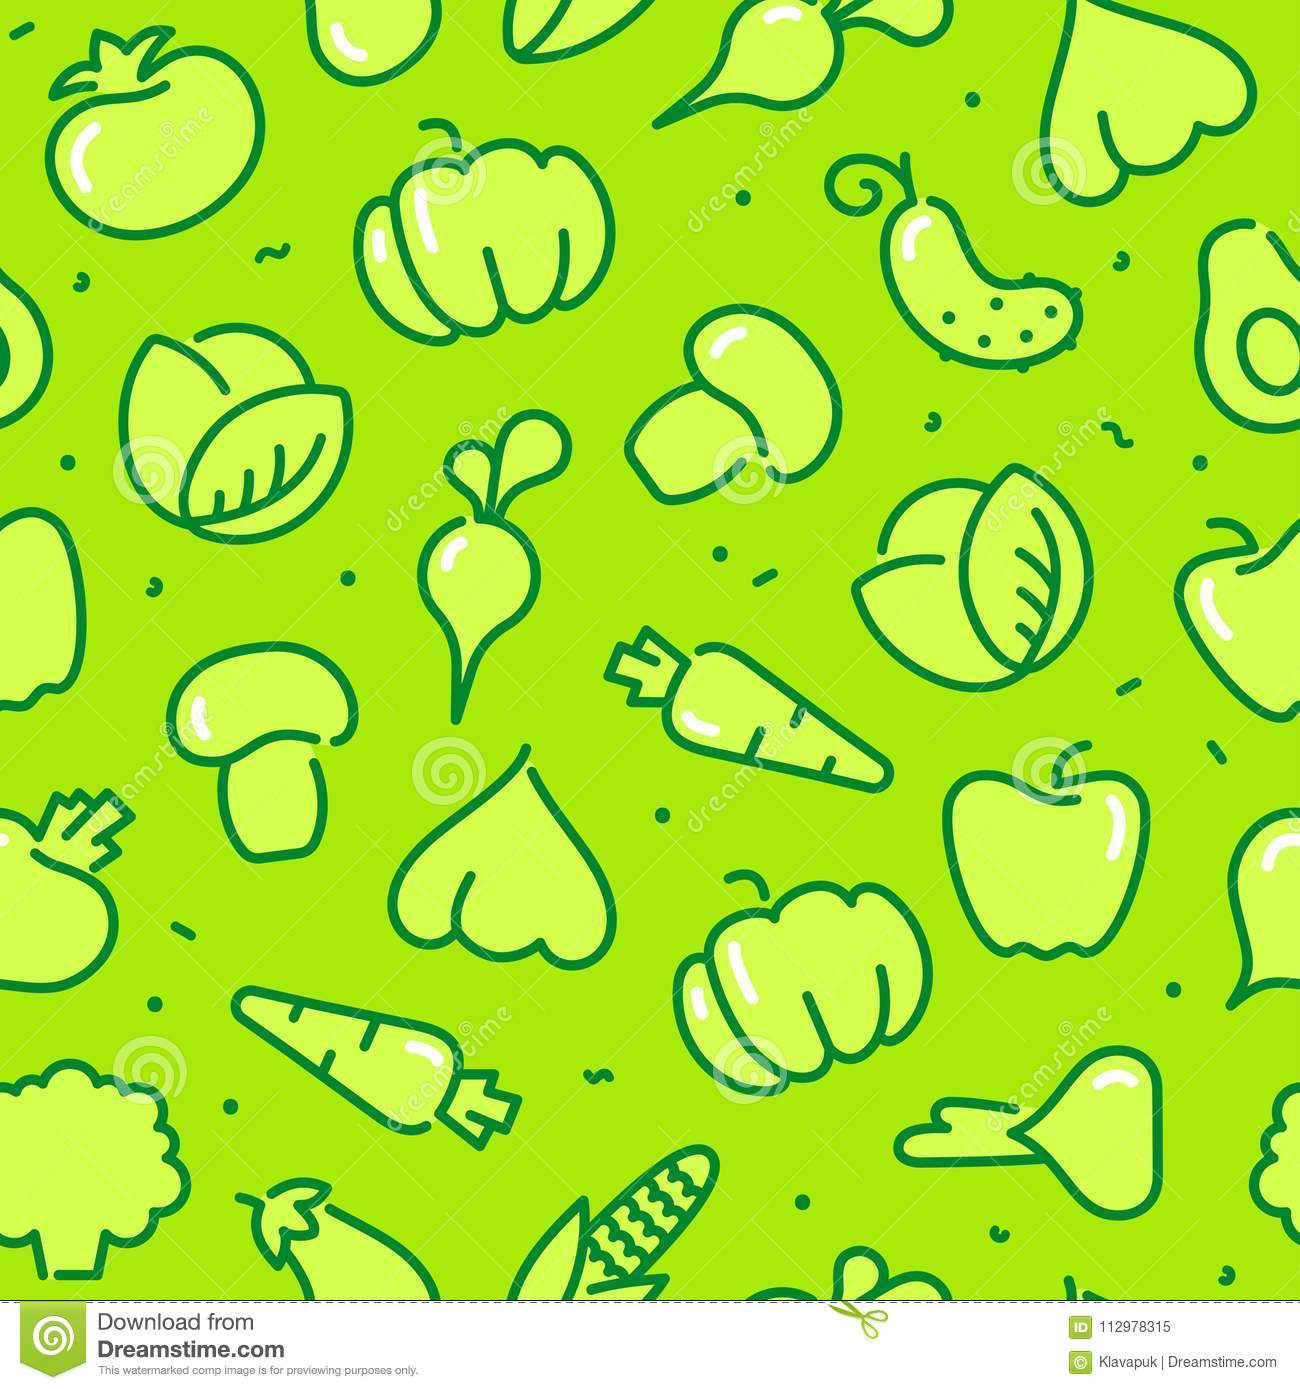 Stylized outlines of vegetables. Seamless background